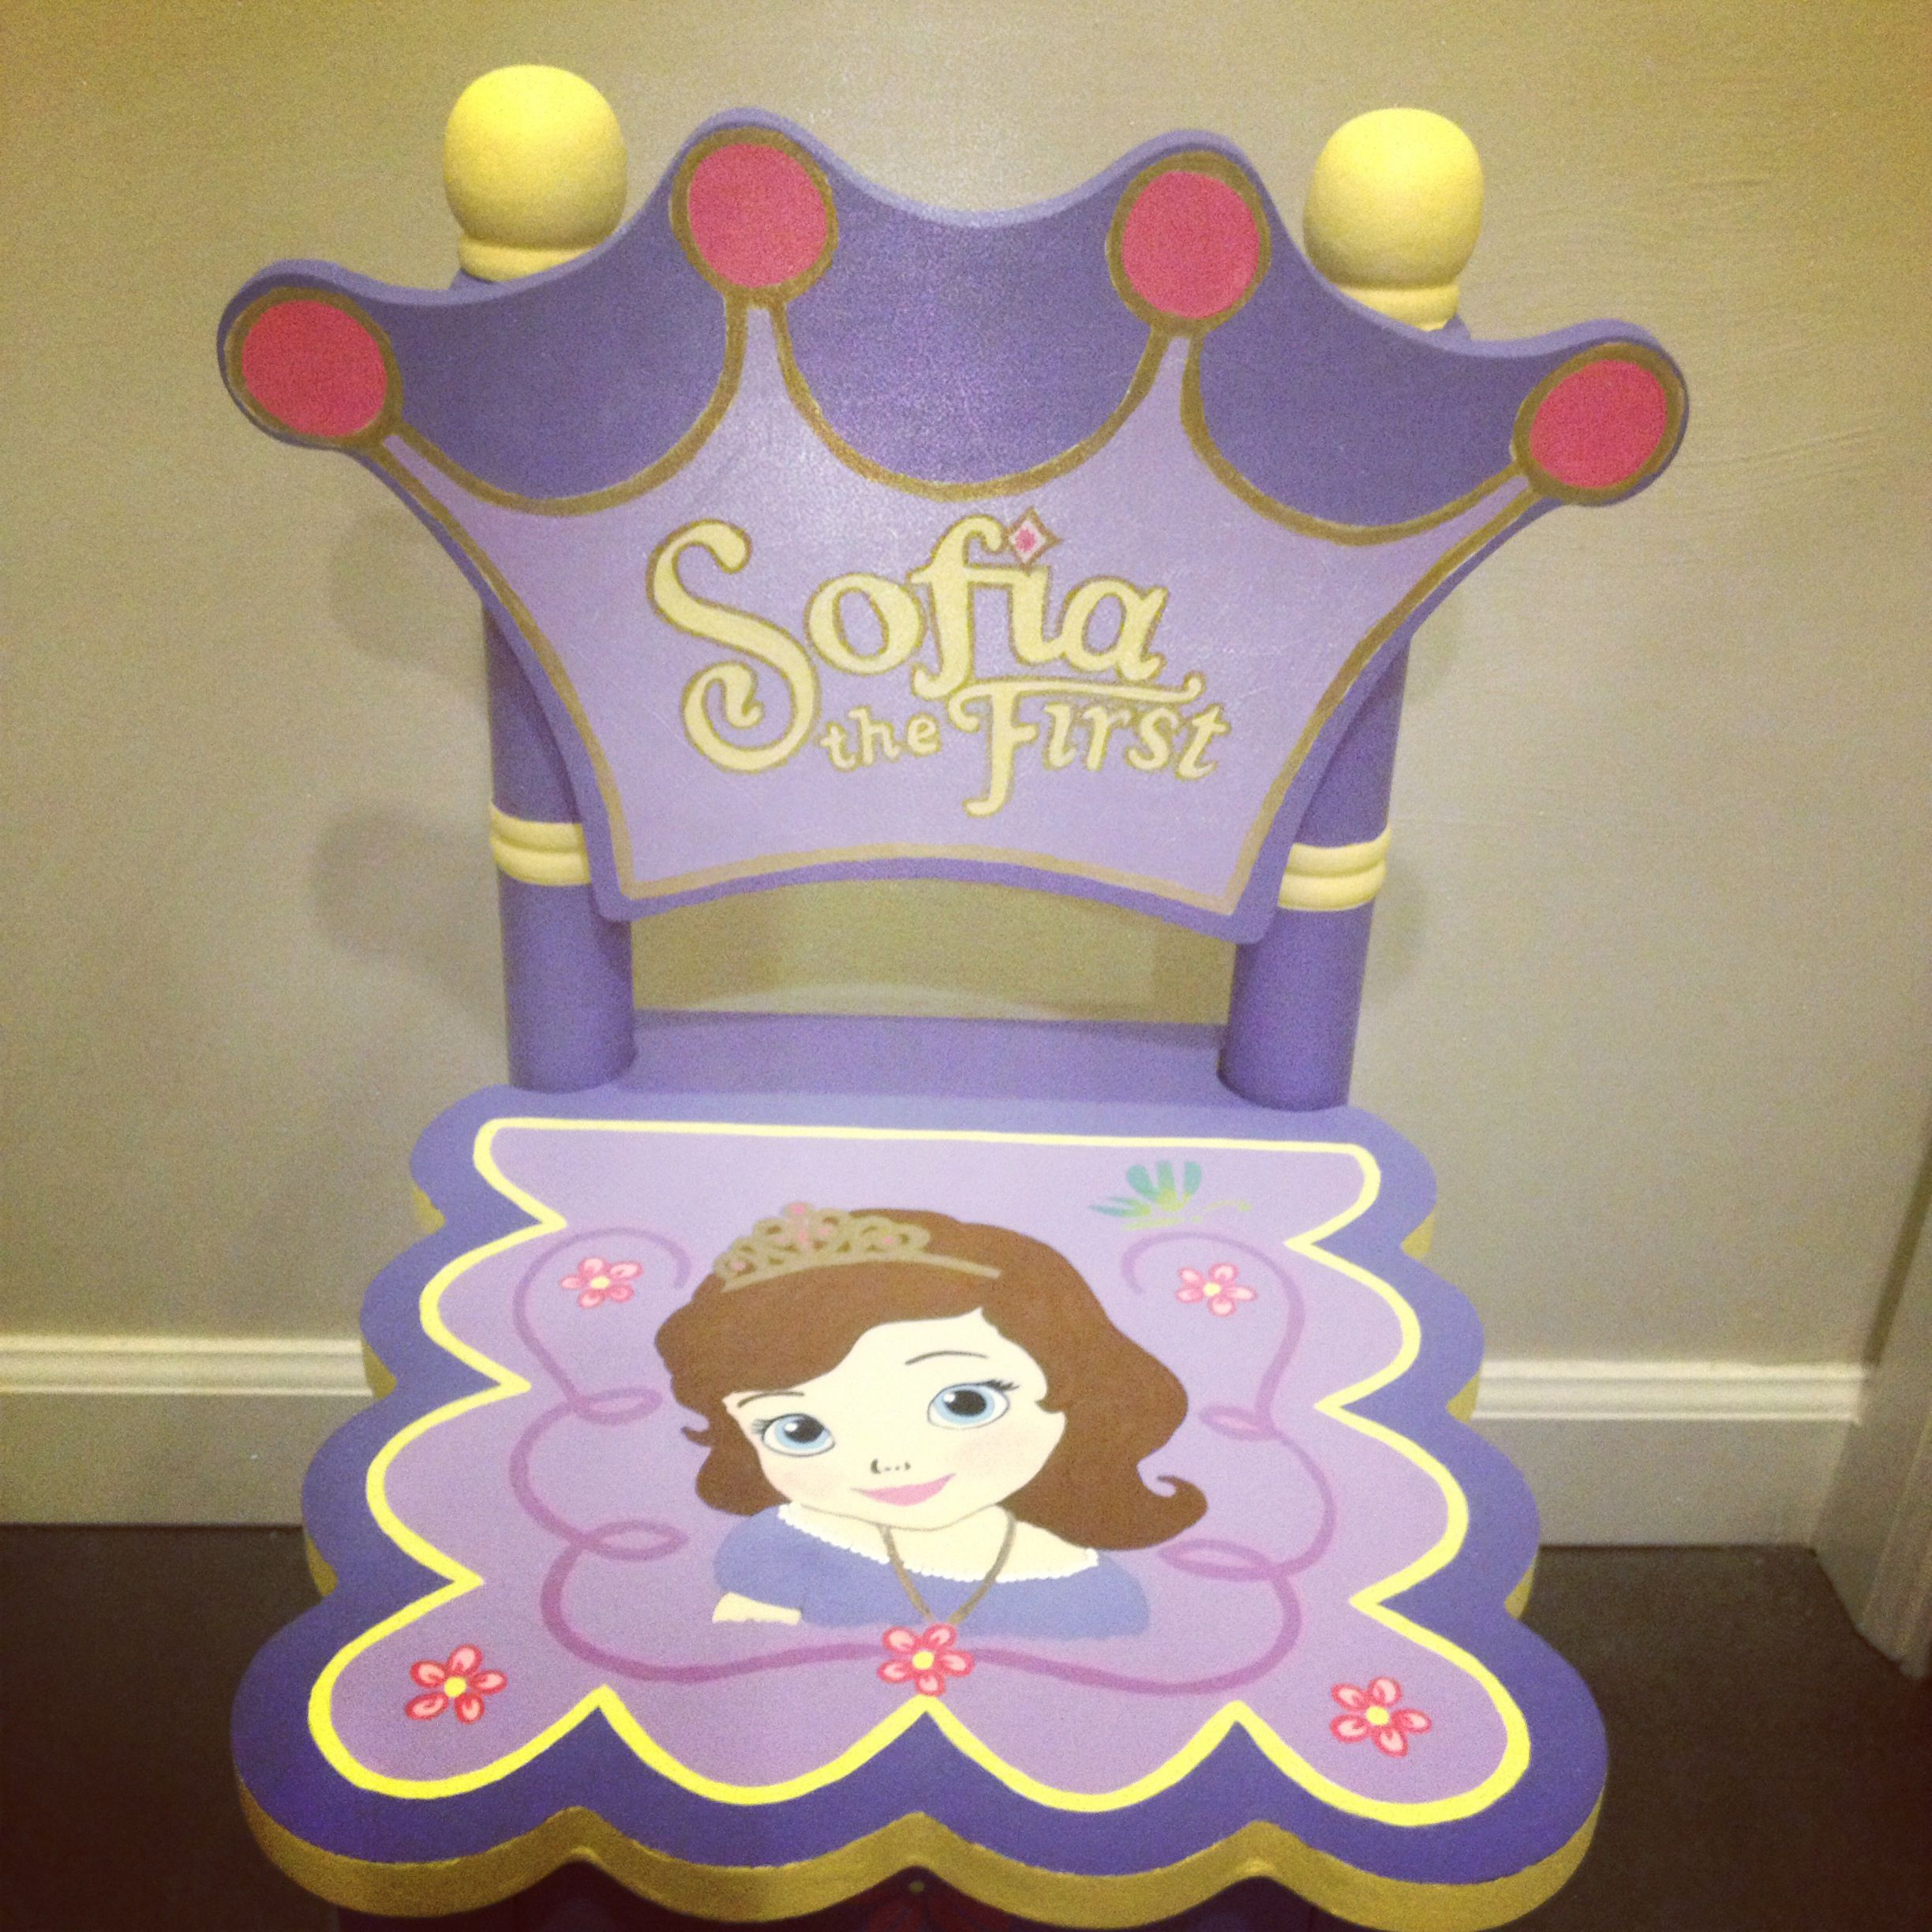 Sofia the first kids toddler chair for little girl Purple and